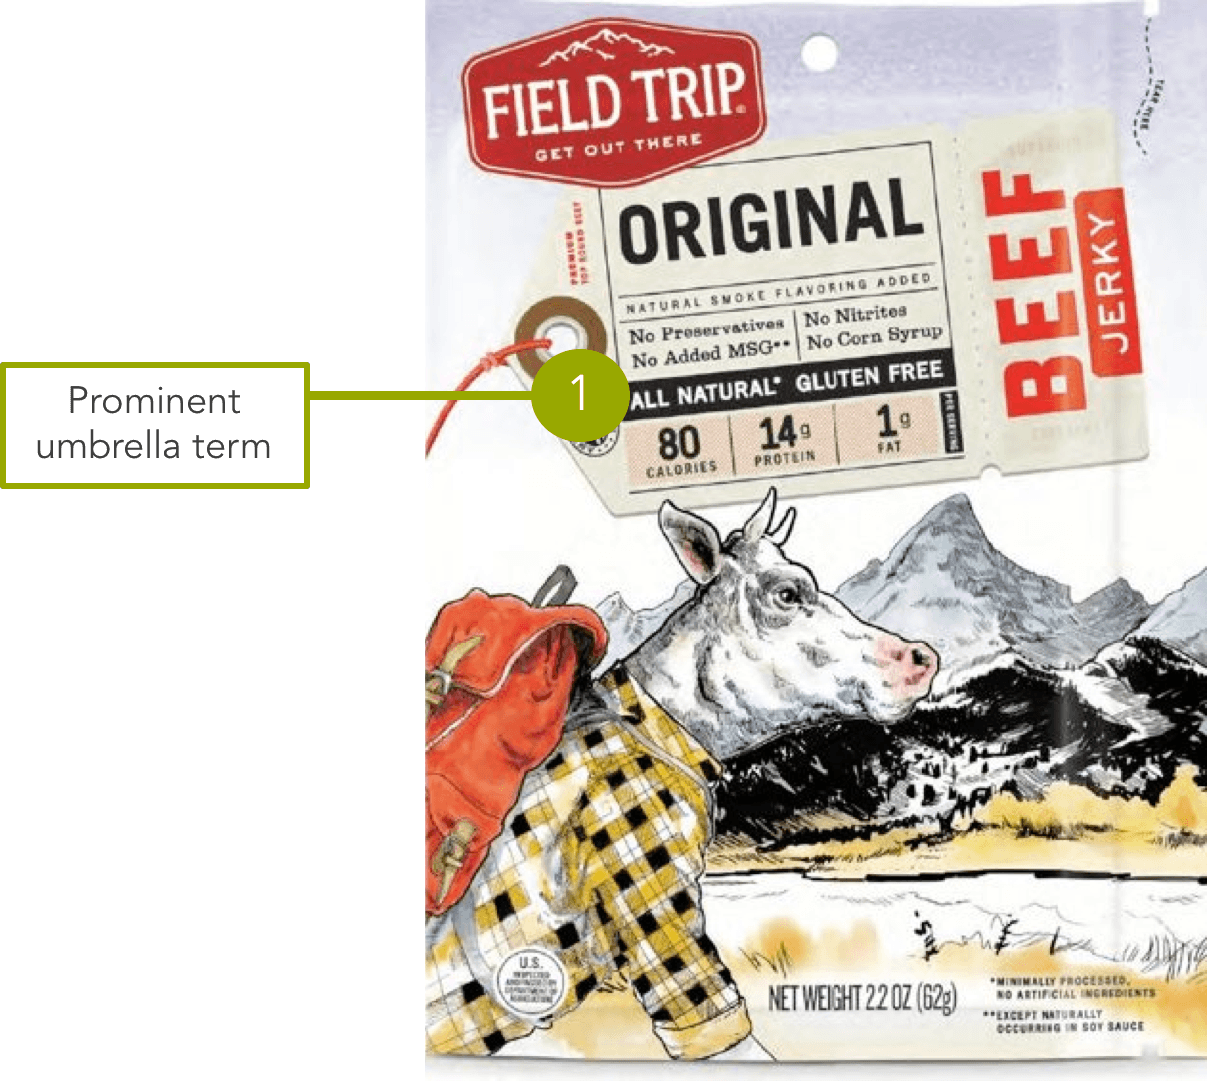 Field Trip beef jerky packaging featuring prominent umbrella terms, 'all natural' and 'gluten free'.